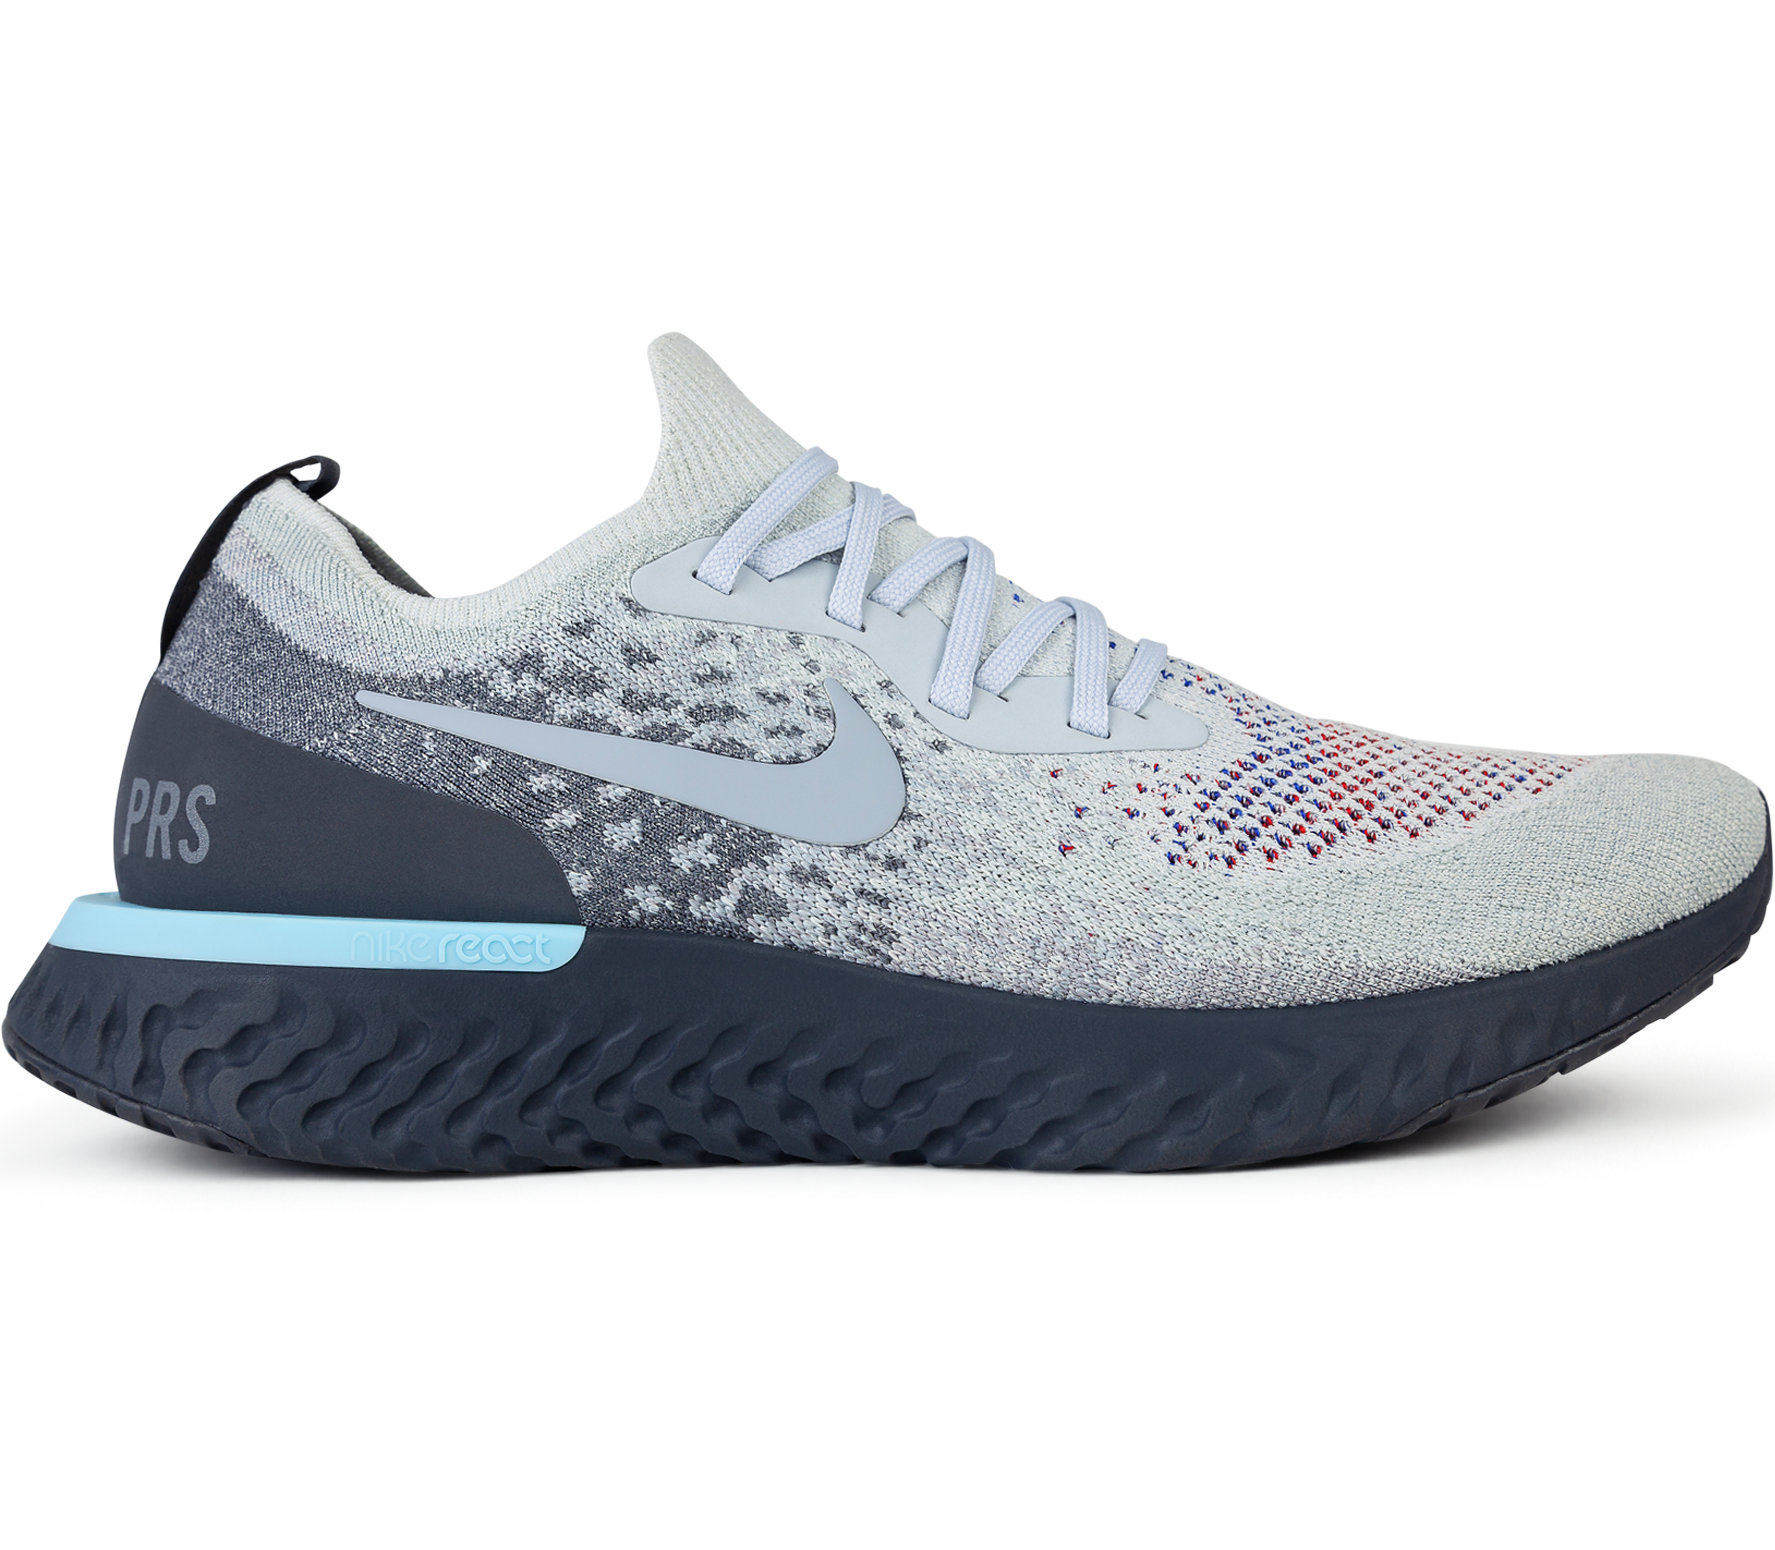 bef4fab459b00 Nike - Epic React Flyknit We  PARIS  men s running shoes (grey ...